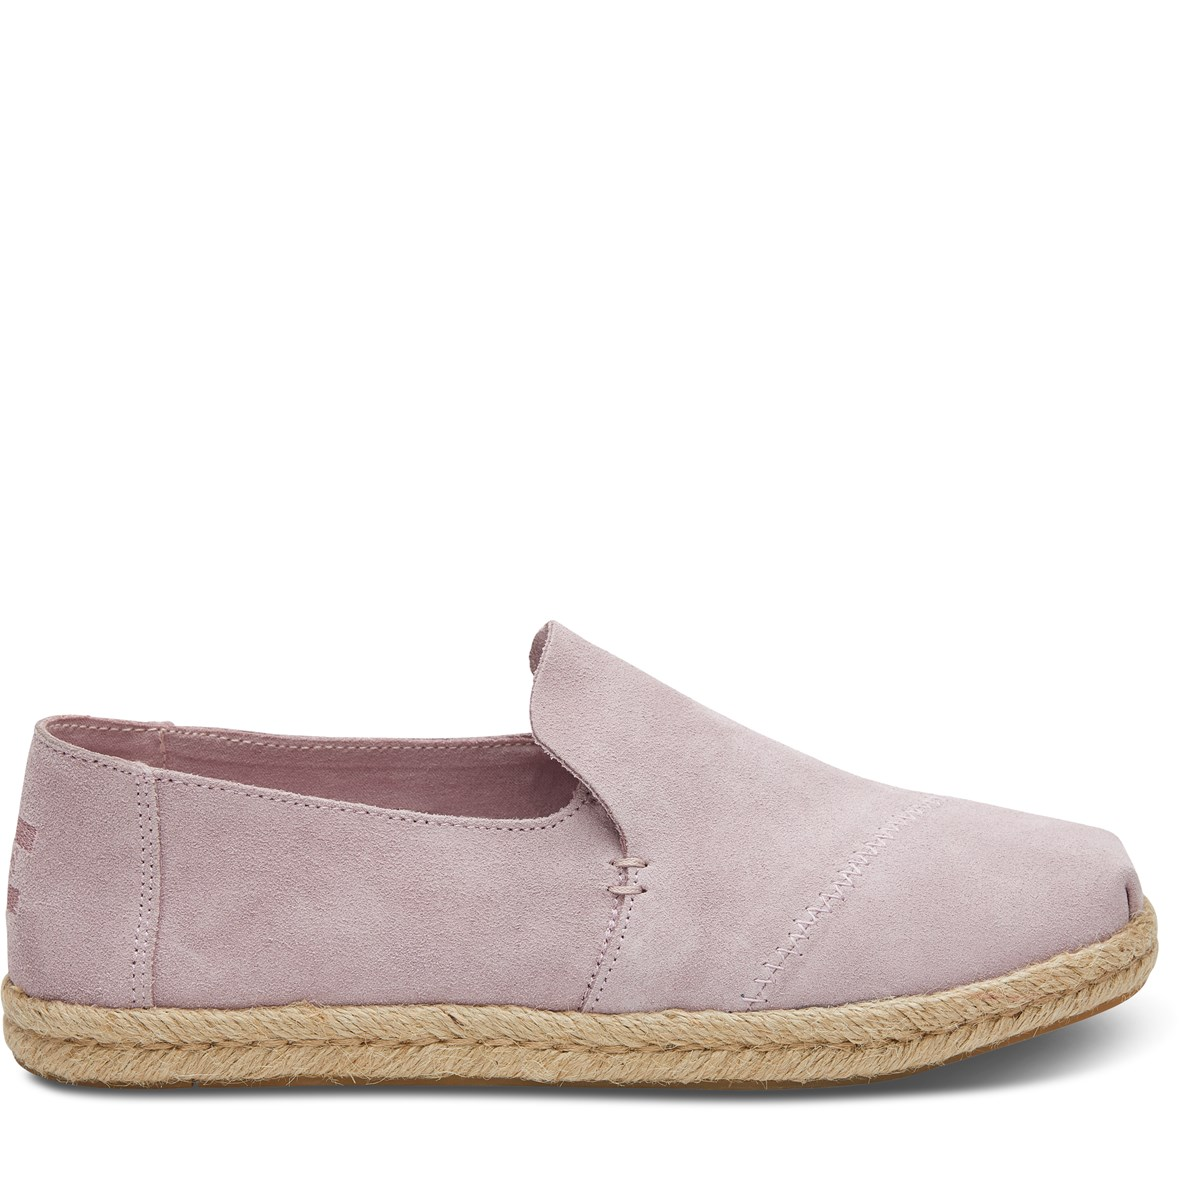 Women's Deconstructed Alpargata Slip-on Espadrille in Lilac